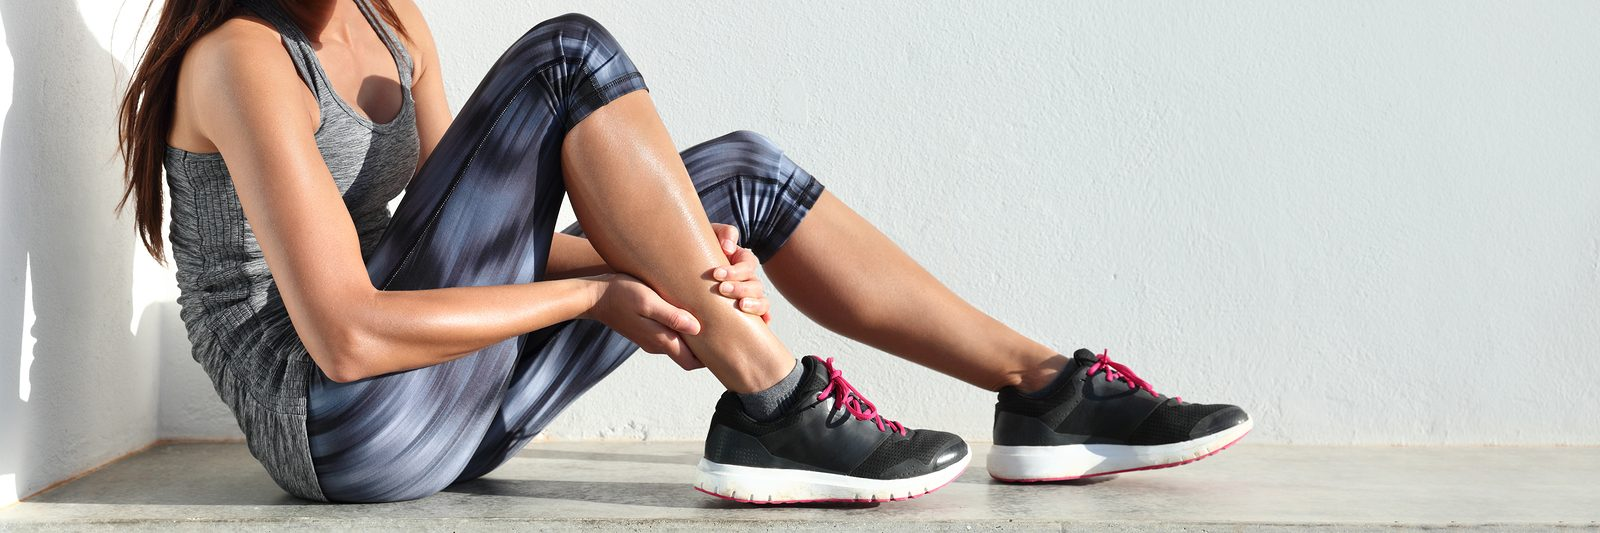 Let Sore Muscles Heal